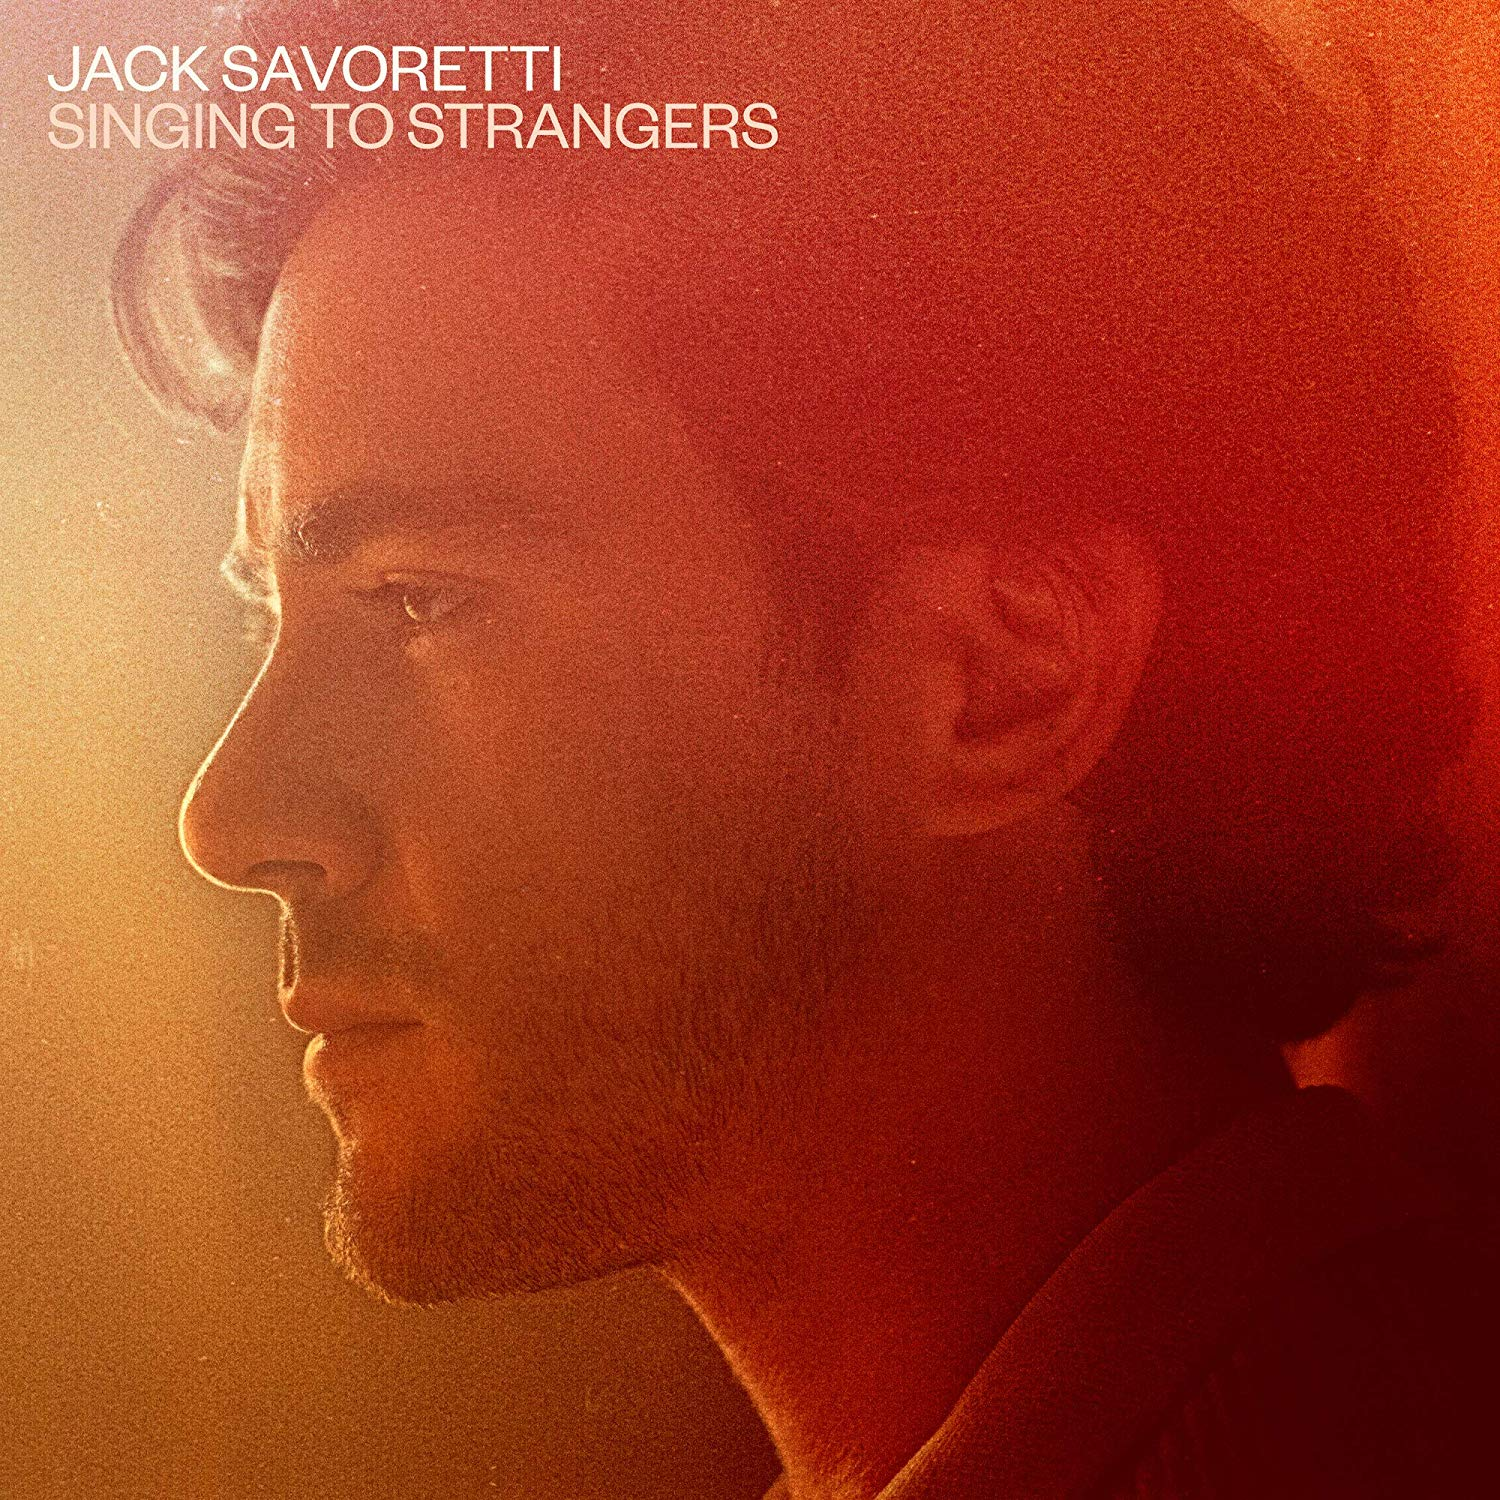 JACK SAVORETTI - SINGING TO STRANGERS (CD)